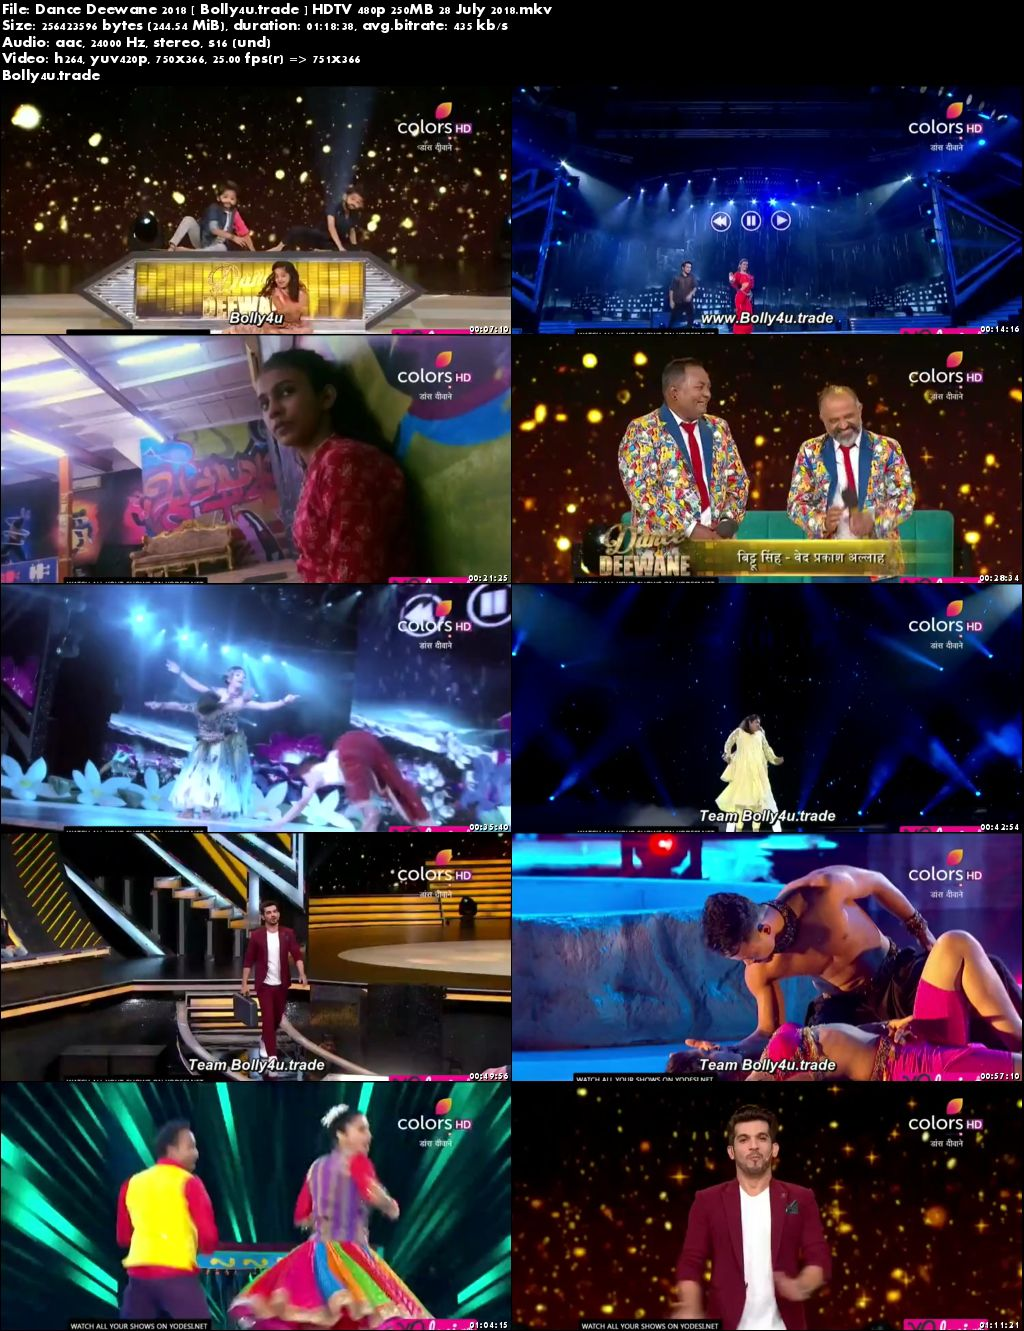 Dance Deewane 2018 HDTV 480p 250MB 28 July 2018 Download